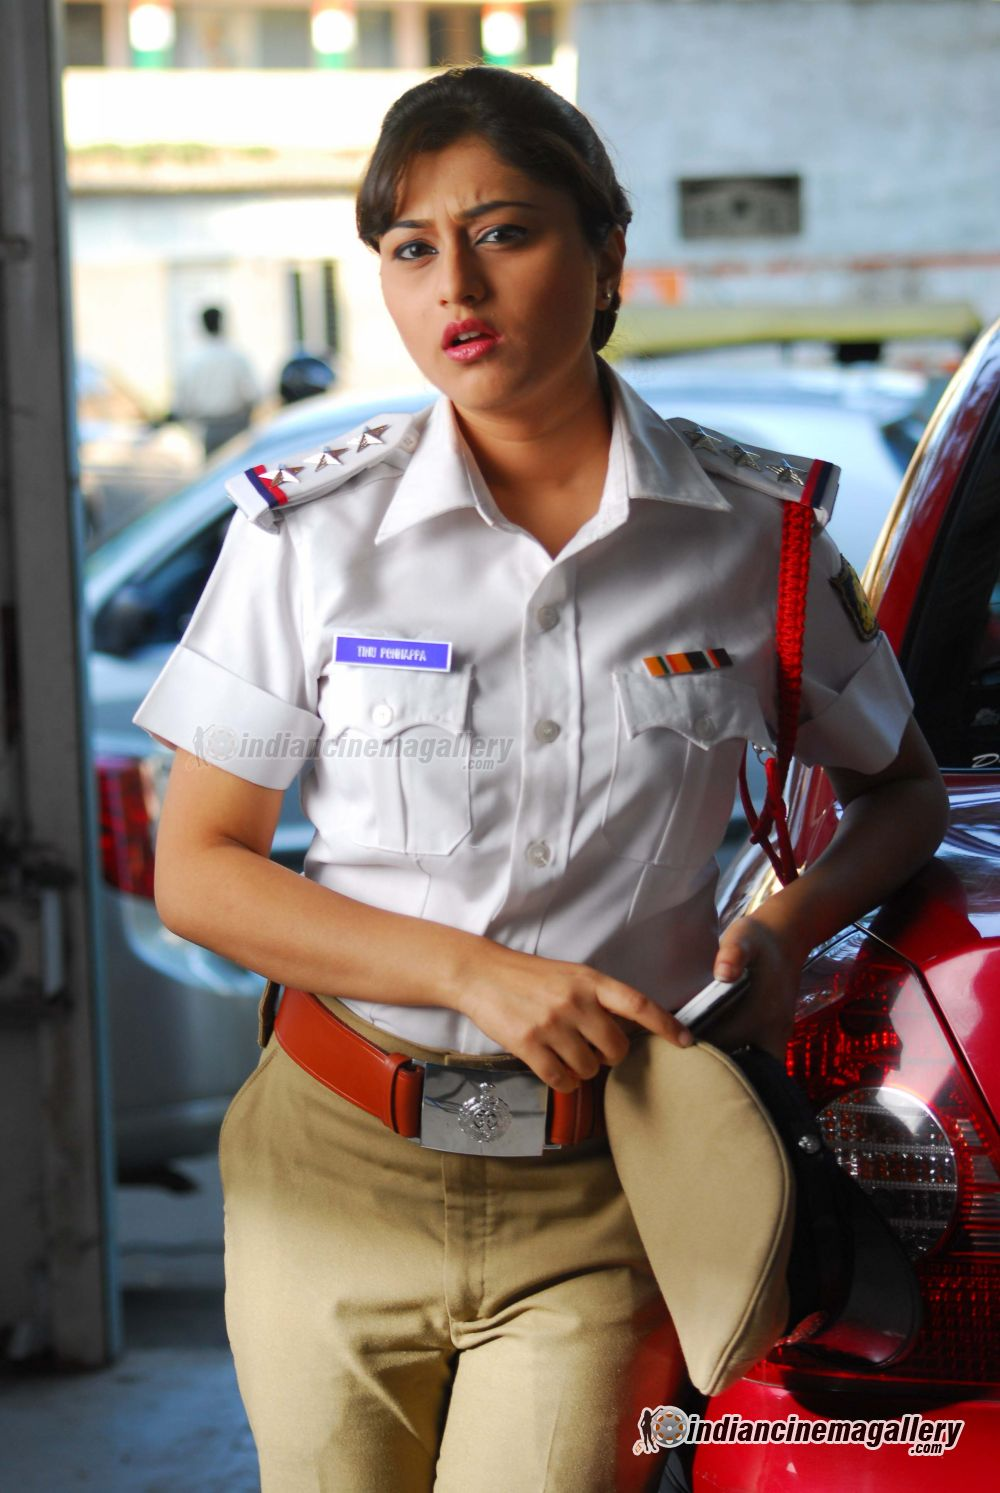 Ramya Barna in traffic police dress - Ramya Barna Hot